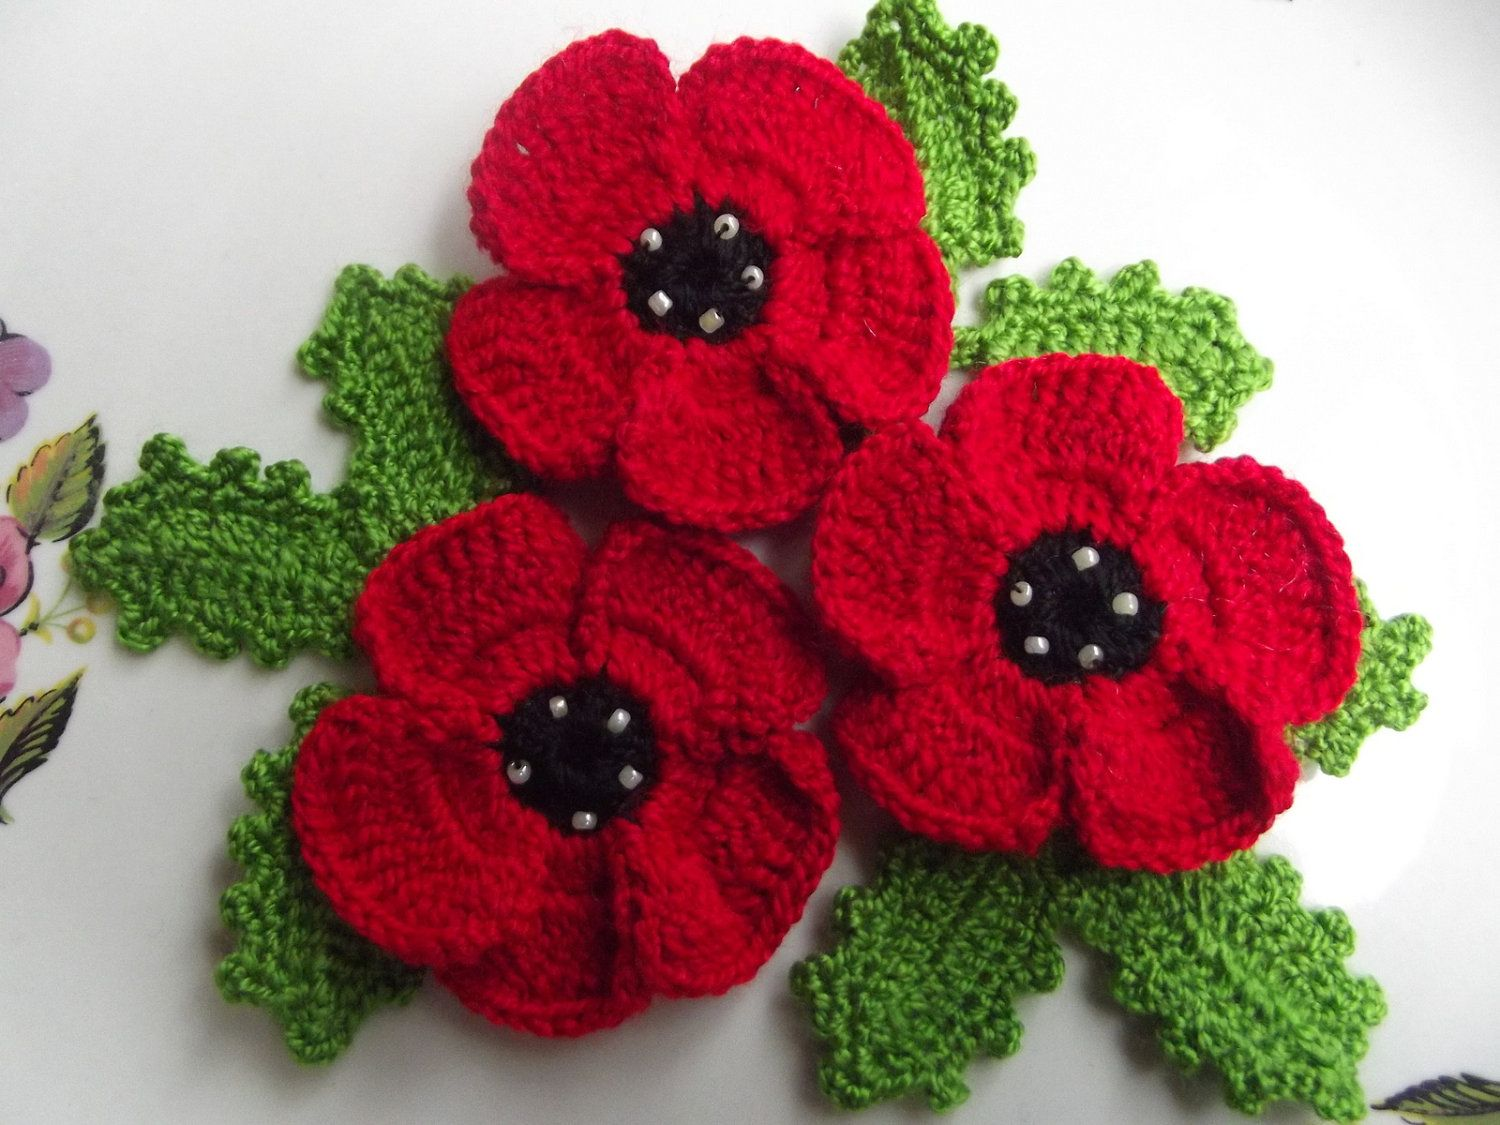 Crochet flowers | Crochet | Pinterest | Ganchillo, Flores y Flores ...